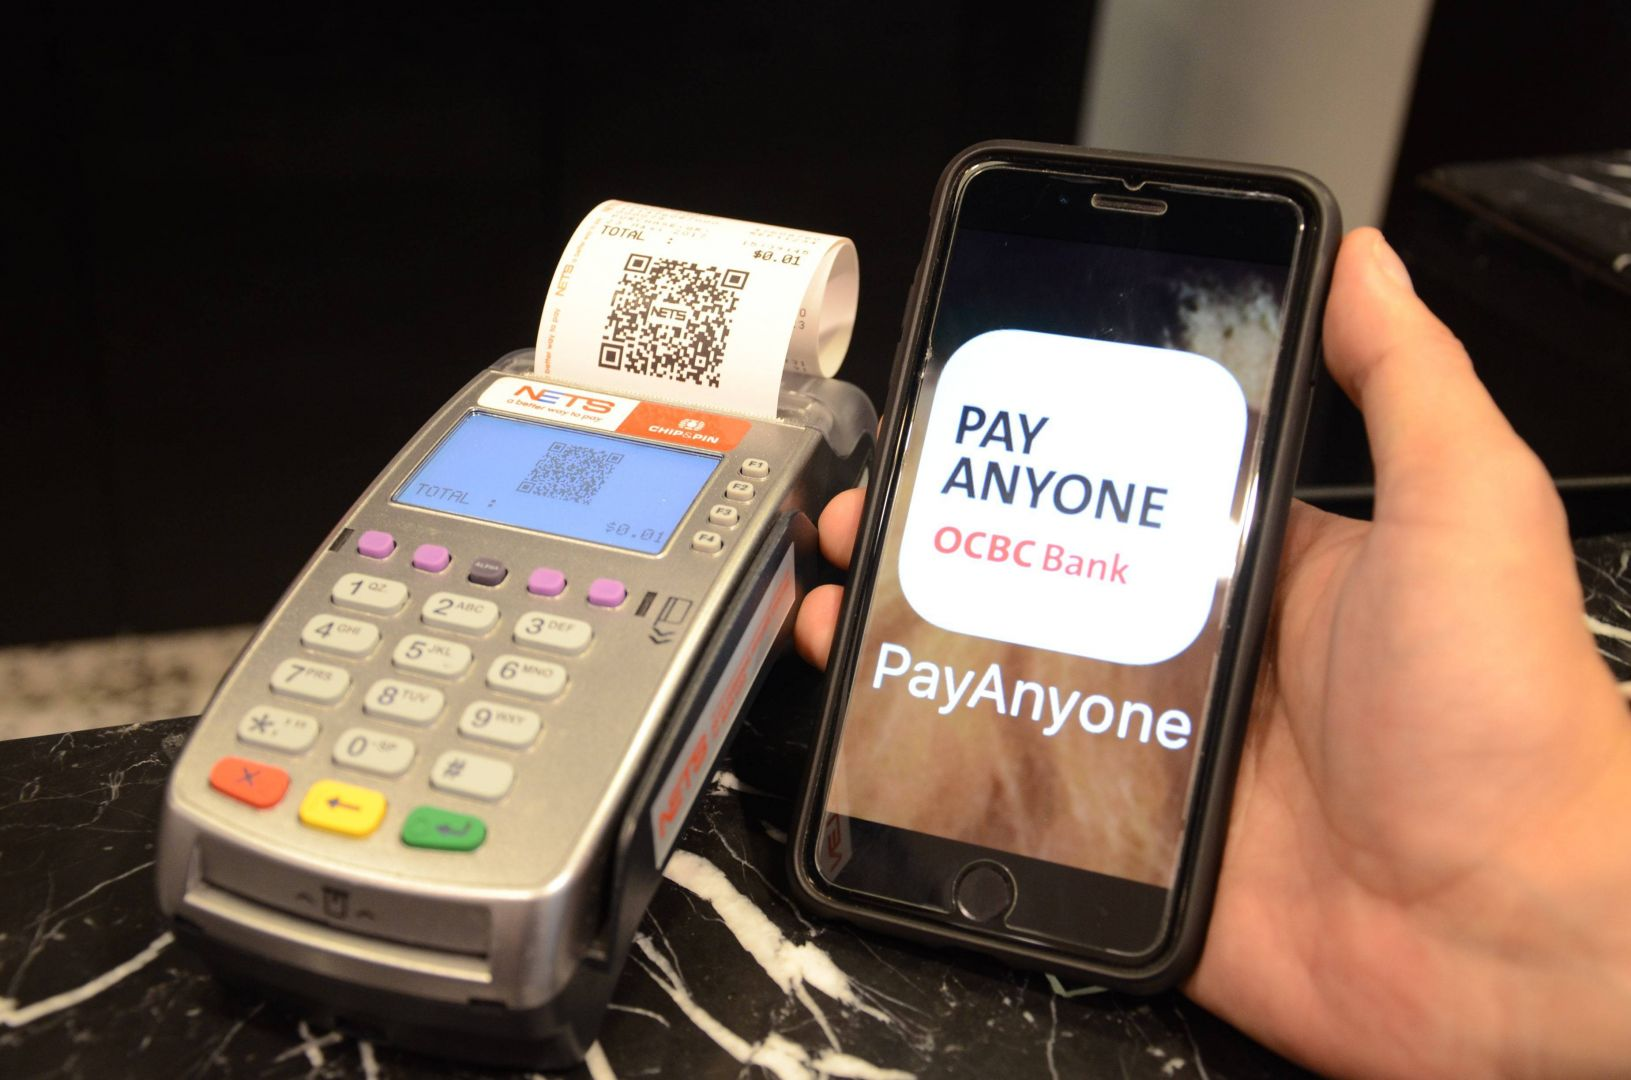 OCBC Bank has launched Pay Anyone app which allows consumers to make cashless payment through QR code.